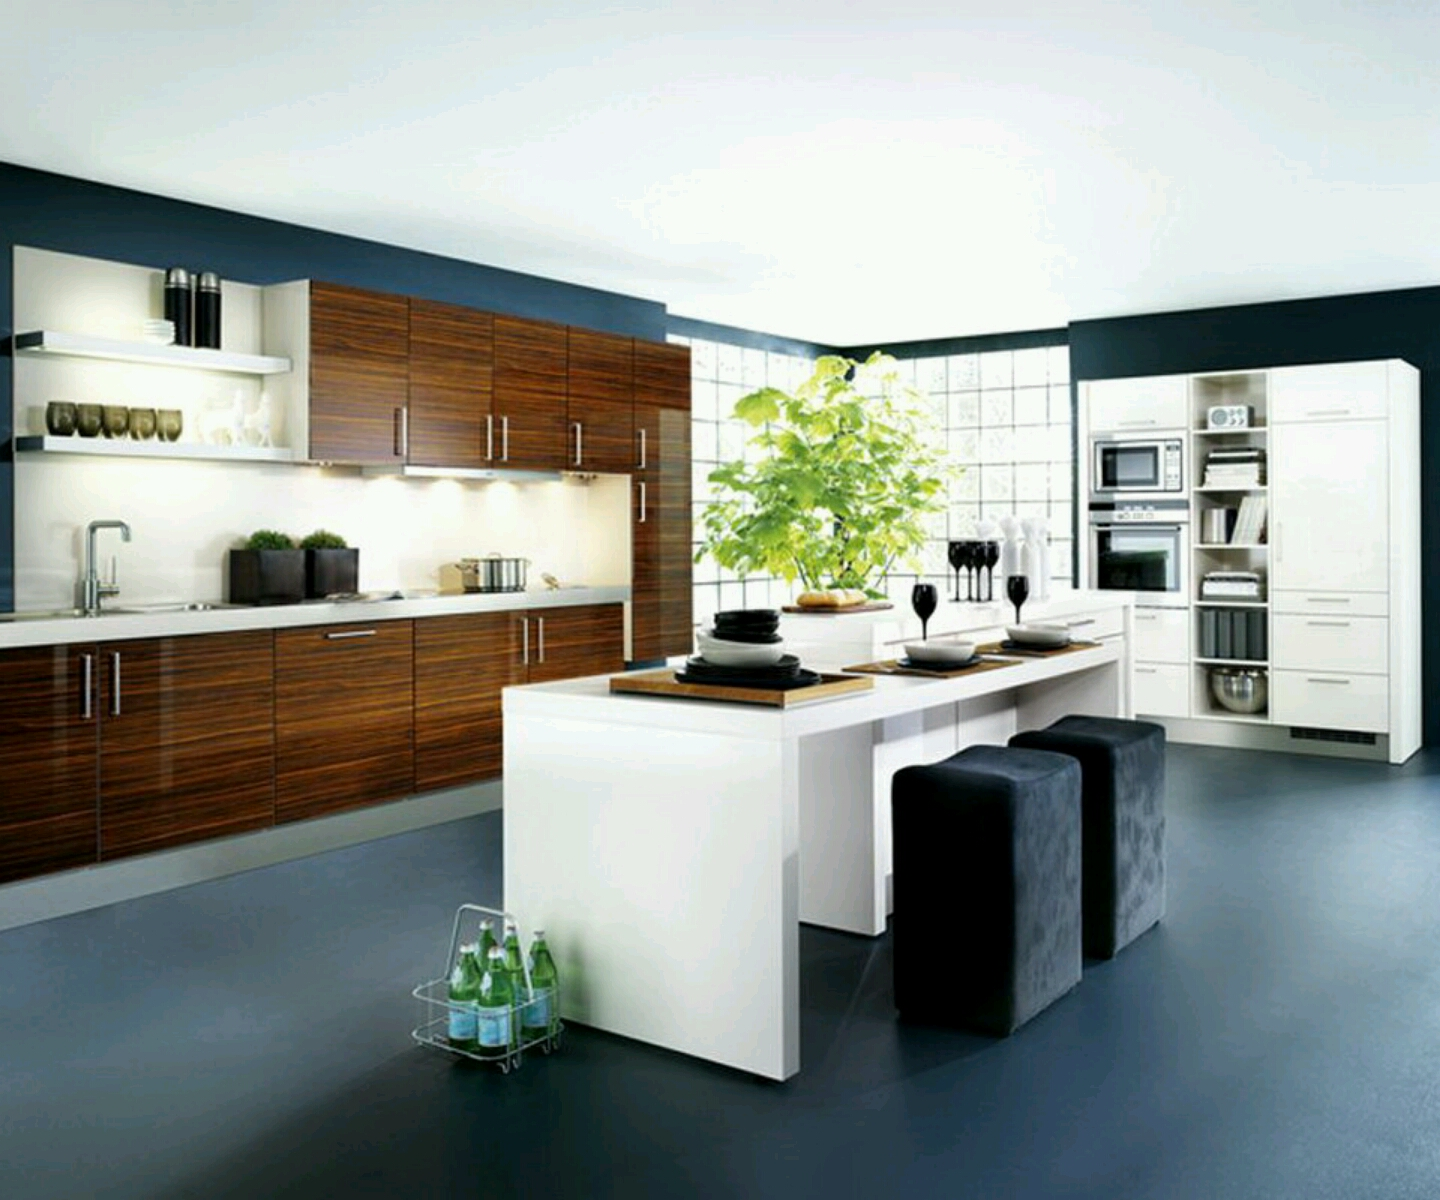 New home designs latest kitchen cabinets designs modern for Kitchen cabinets and design